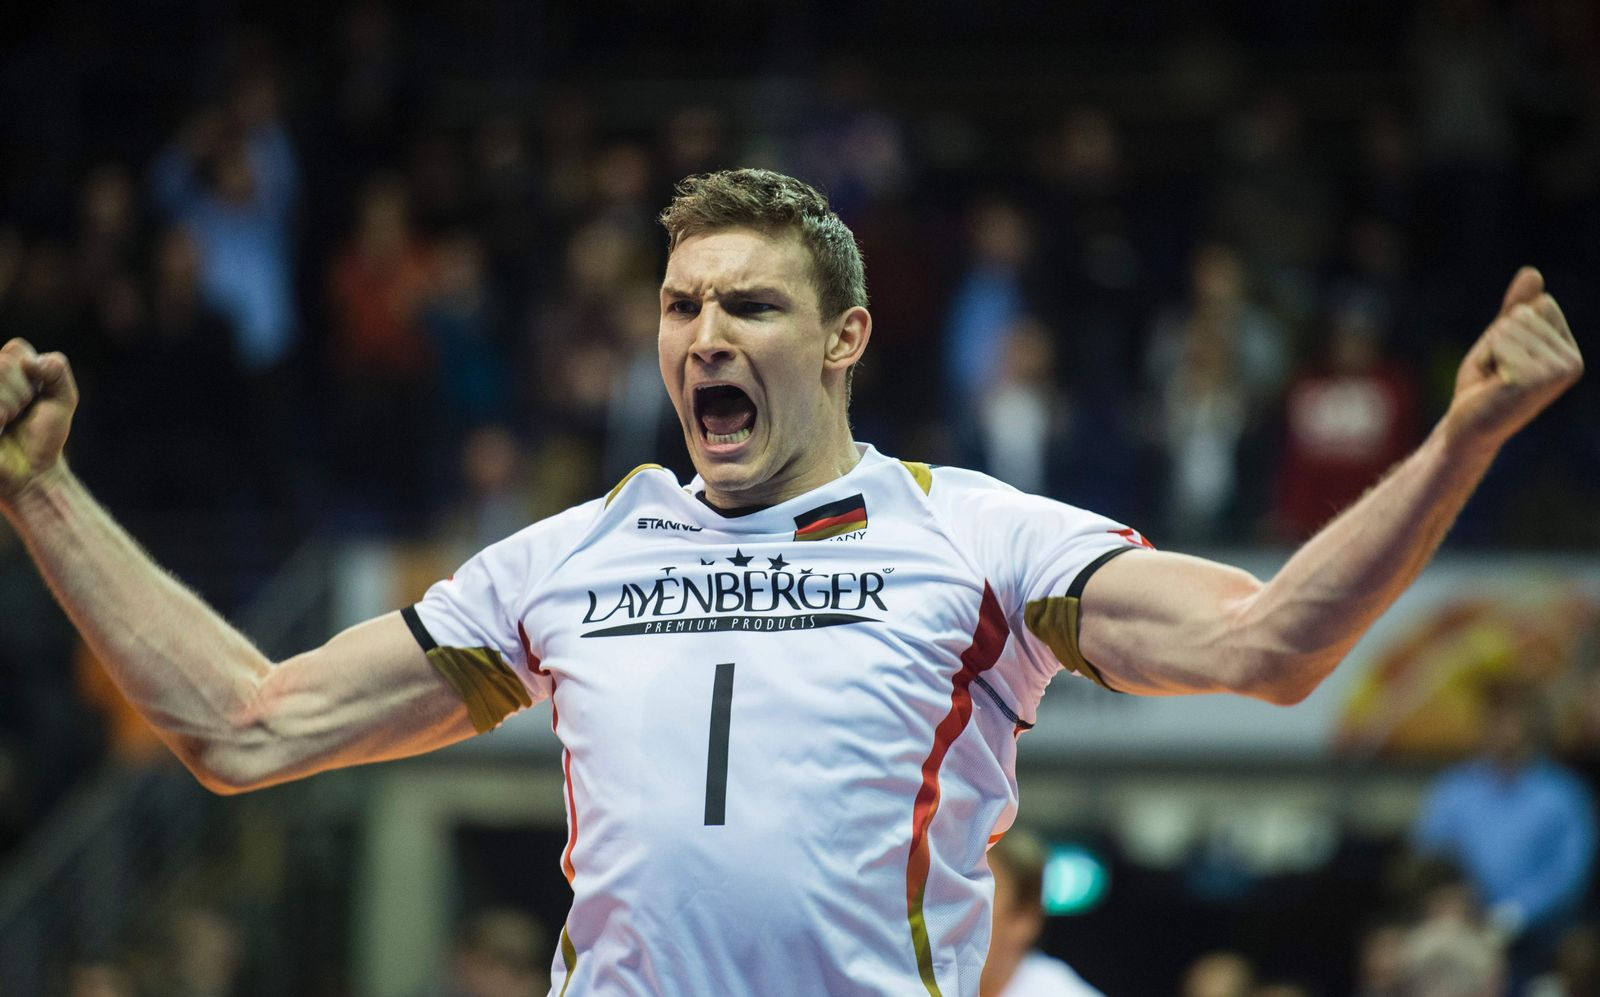 VOLLEYBALL-OLY-GER-SRB-QUALIFIER